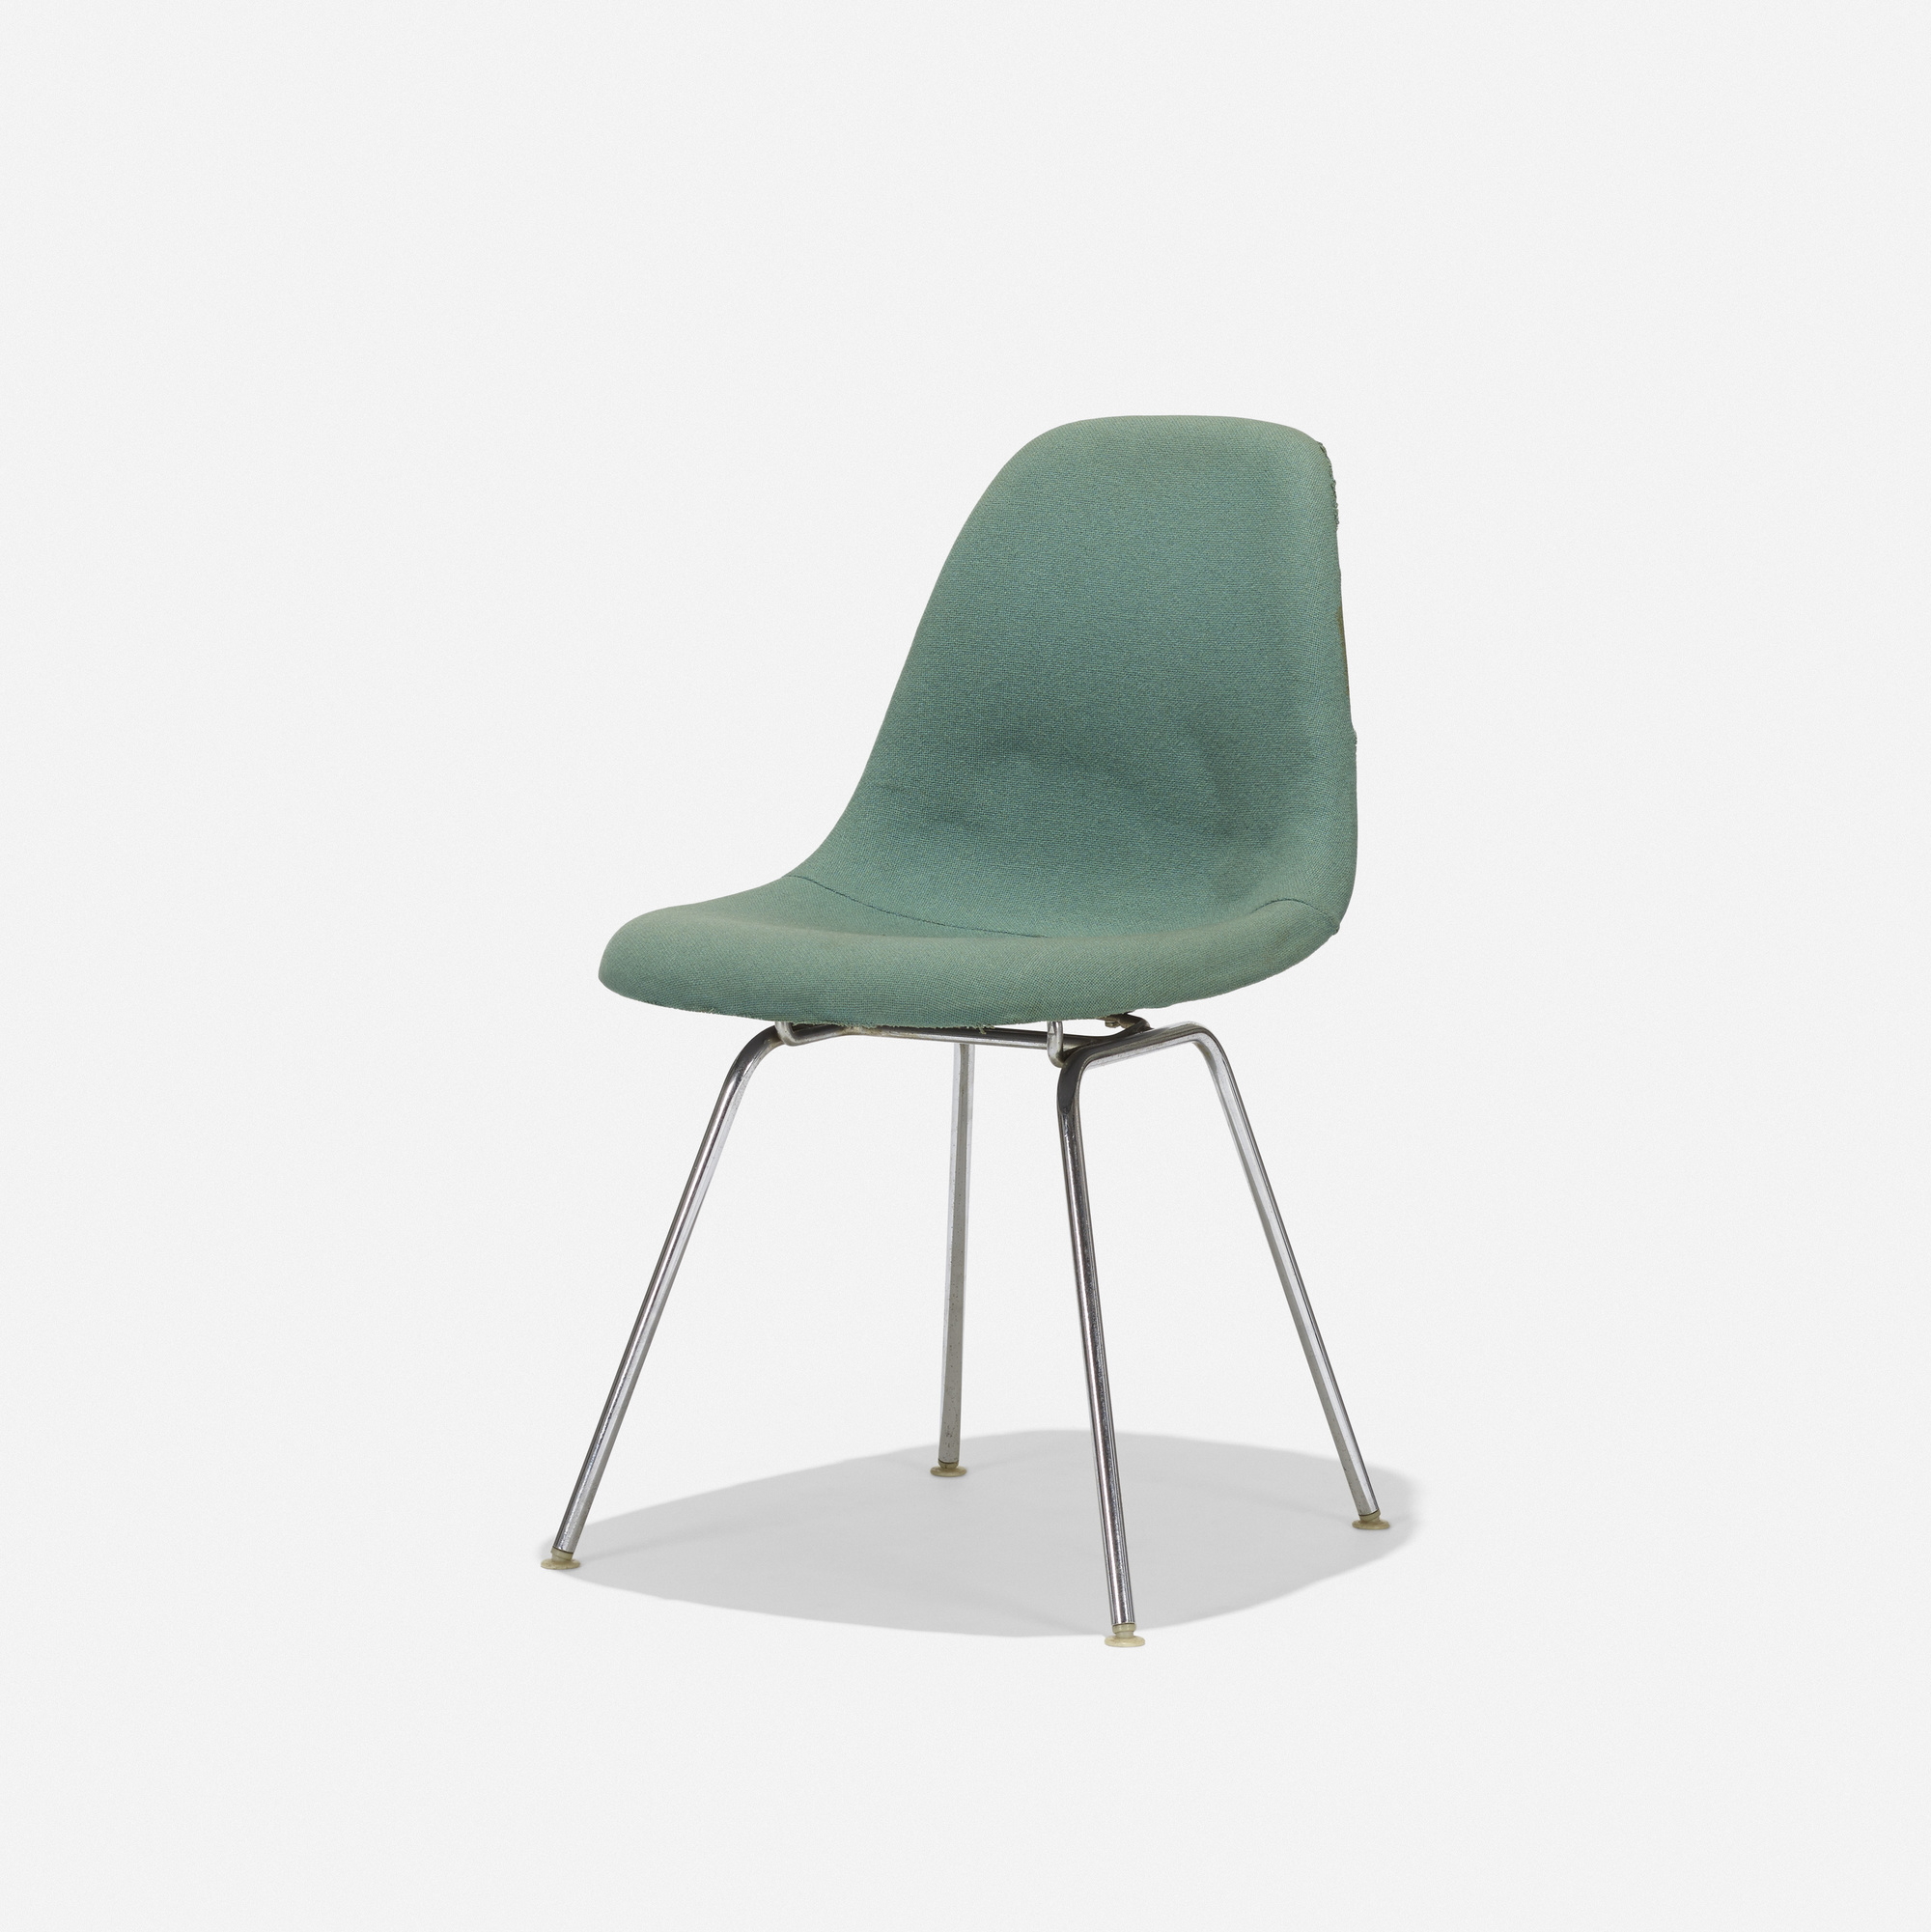 109: Charles and Ray Eames / DSX-1 (1 of 4)